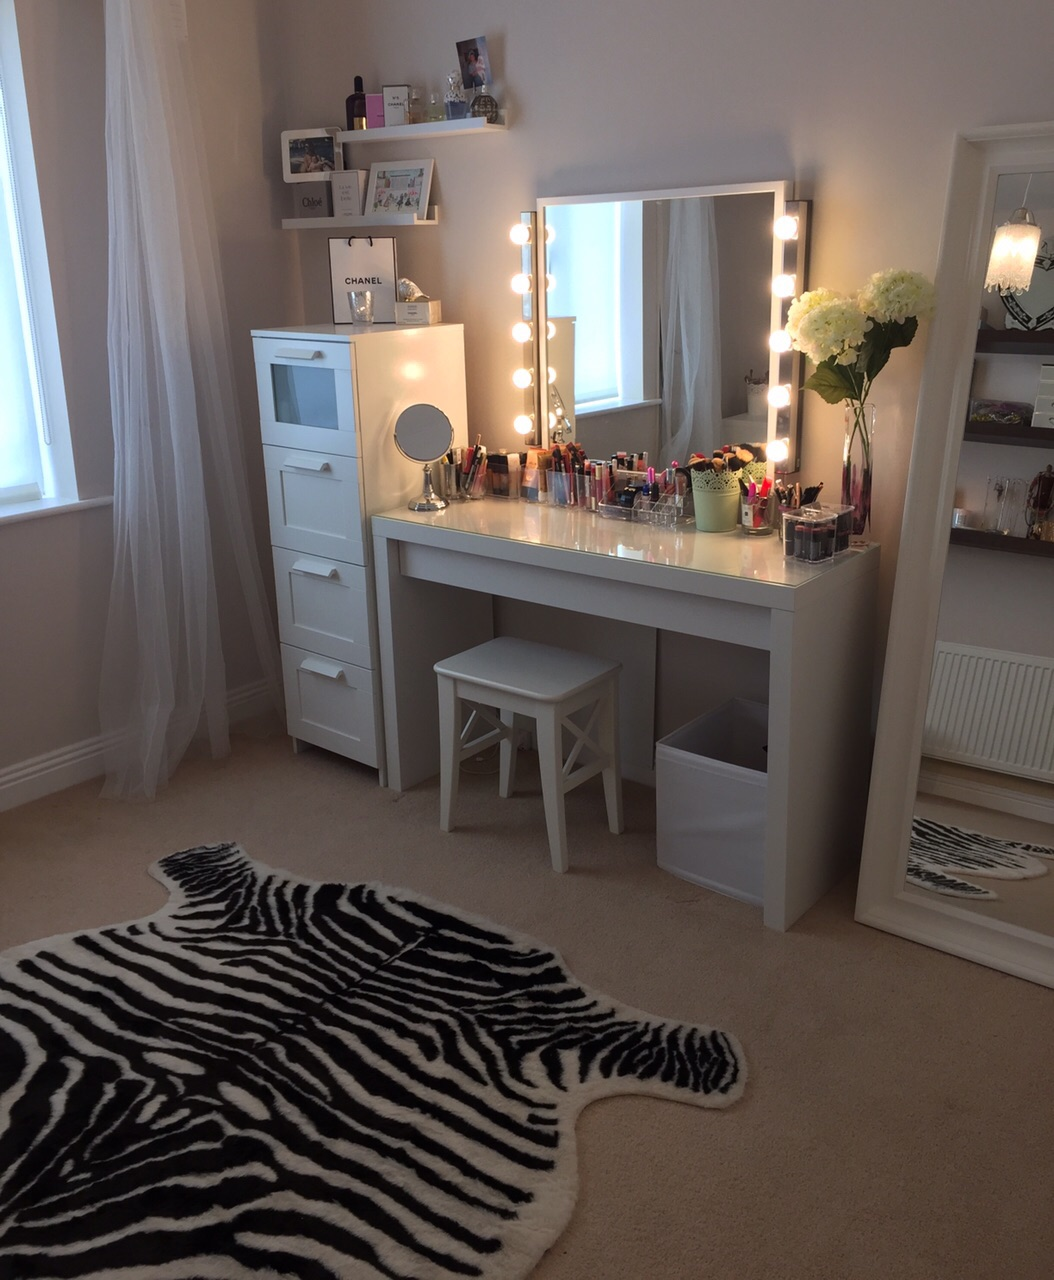 Ikea Kit Dressing My Dress Up Room Pippa O Connor Official Website